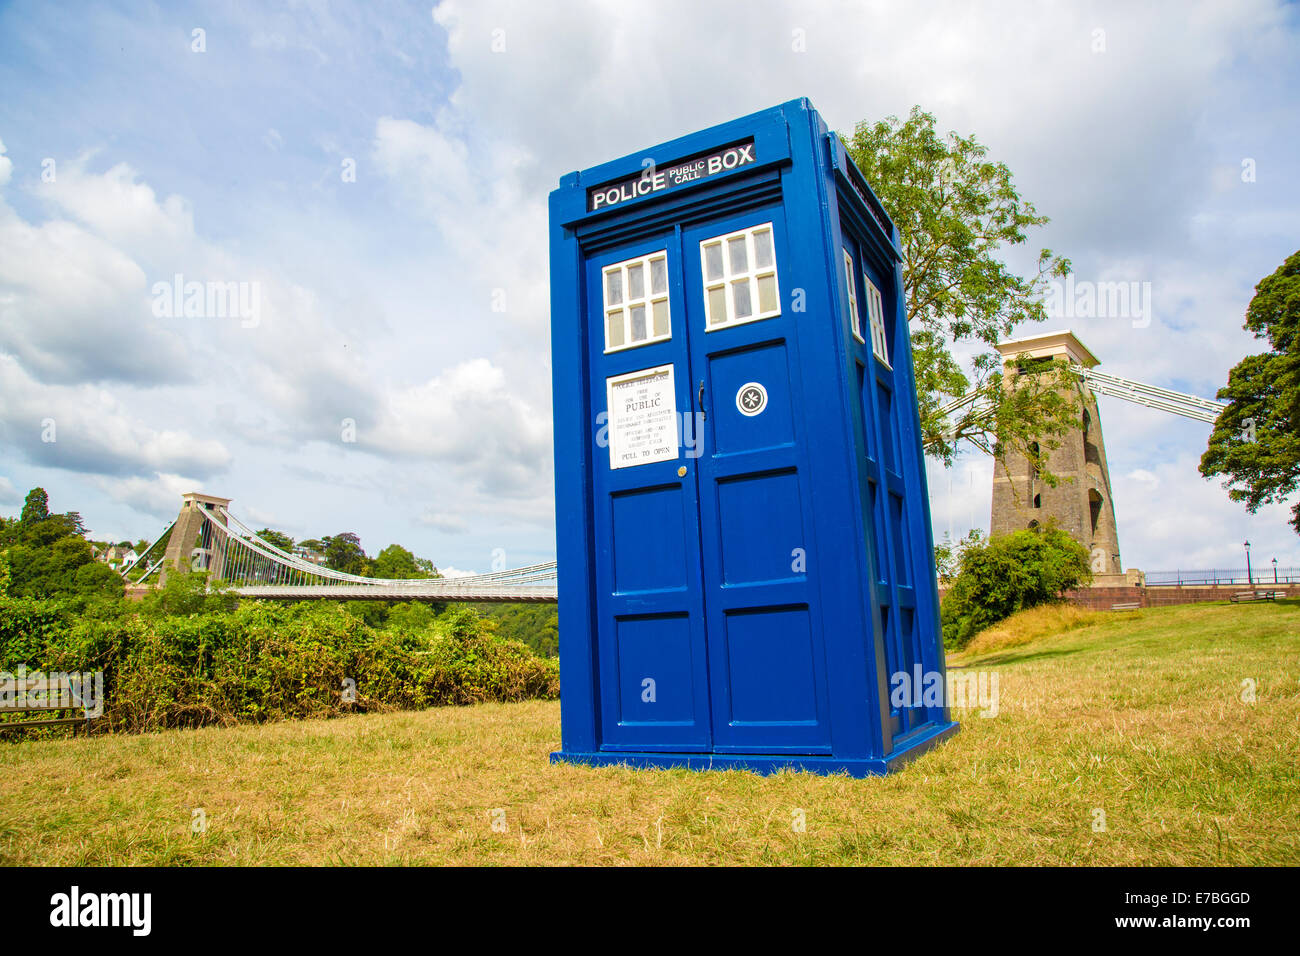 Time traveller Dr Who making a brief appearance at the Clifton Suspension Bridge in his Tardis - Bristol UK - Stock Image